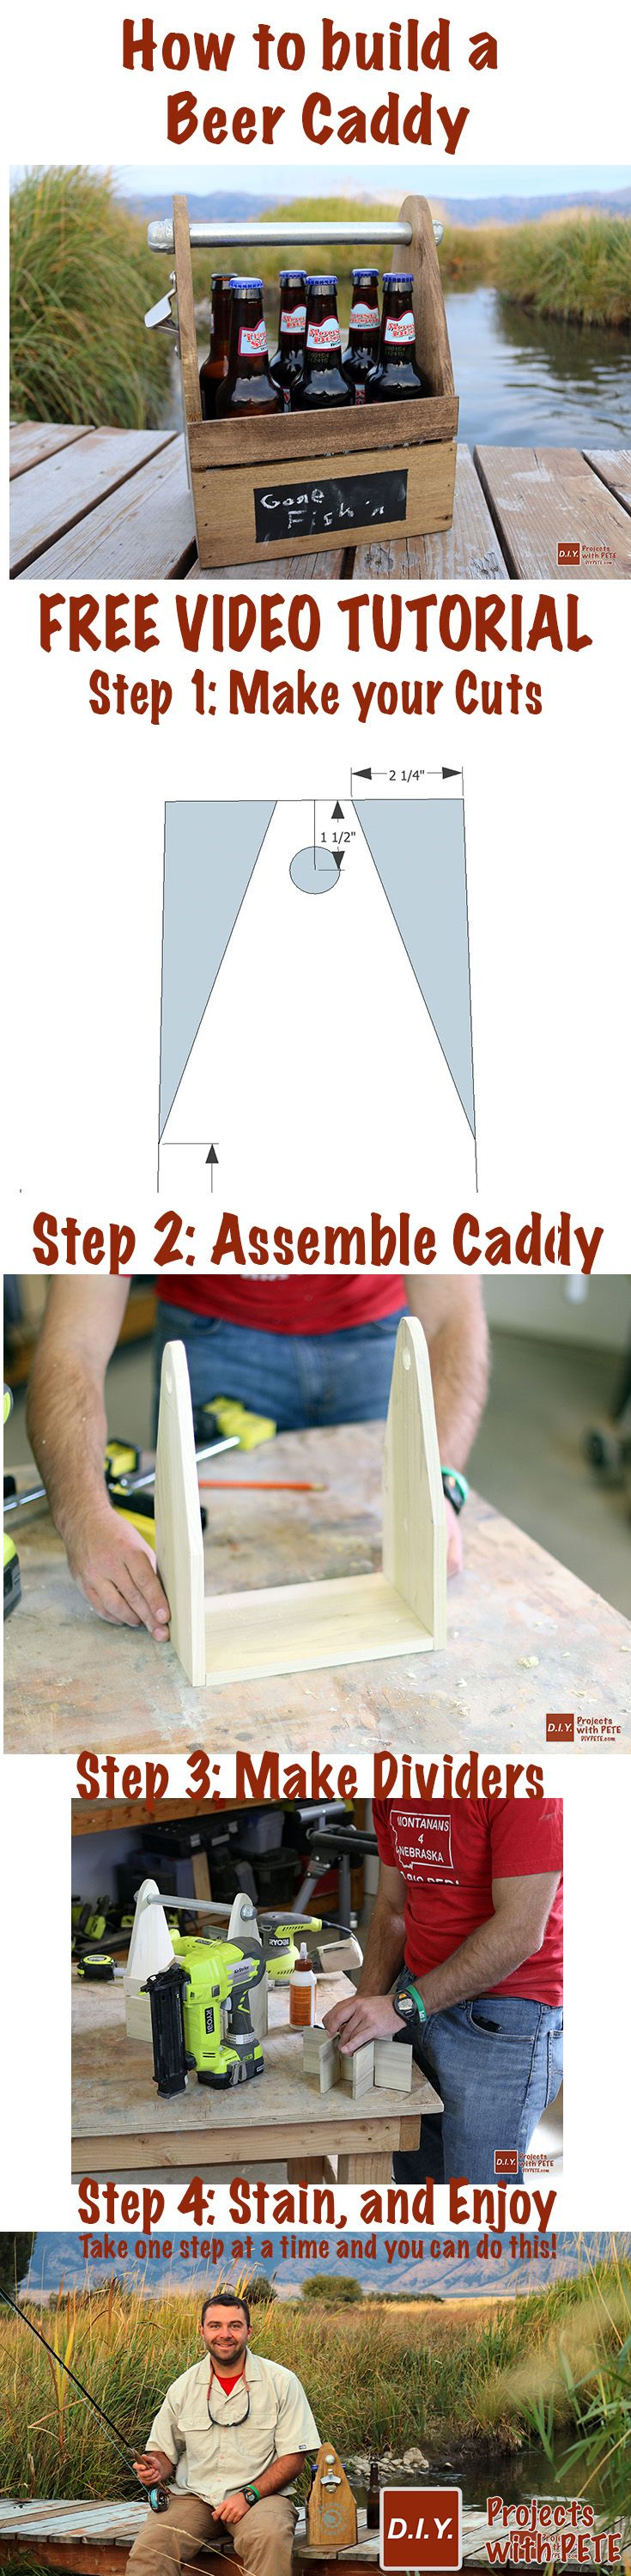 43 best DIY PETE VIDEO TUTORIALS images on Pinterest | Woodworking ...